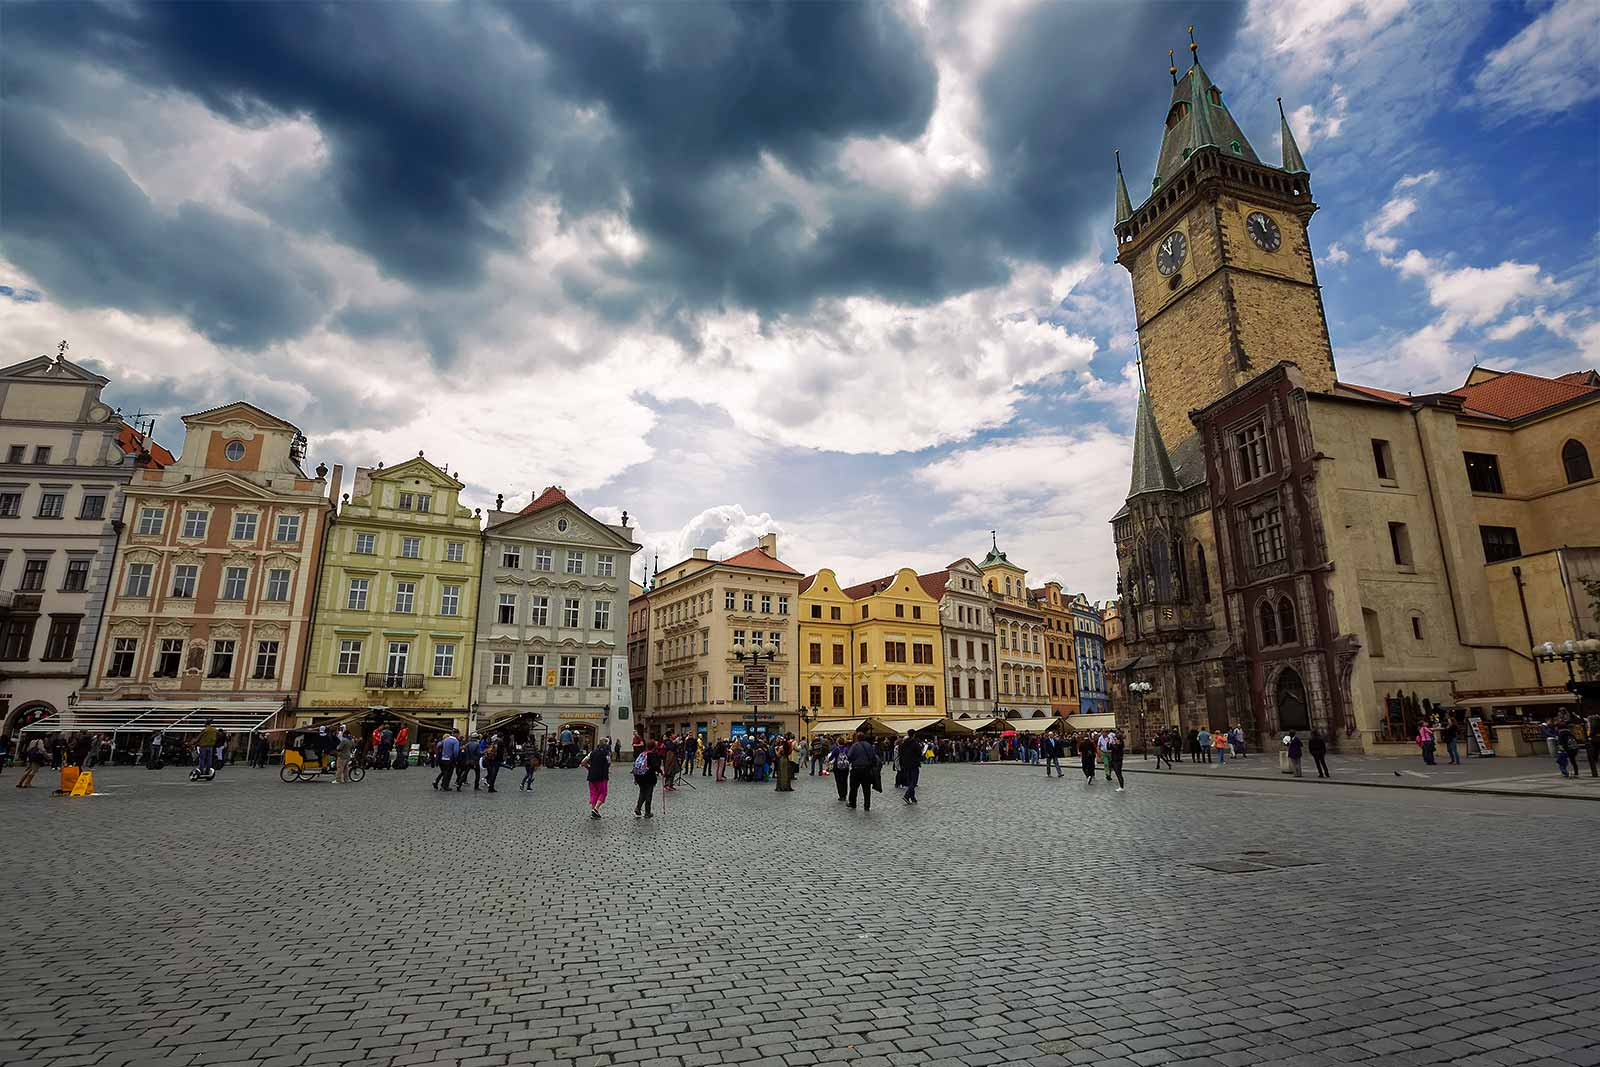 The Old Town Square in Prague is home to some of the most iconic and dramatic buildings of the city.